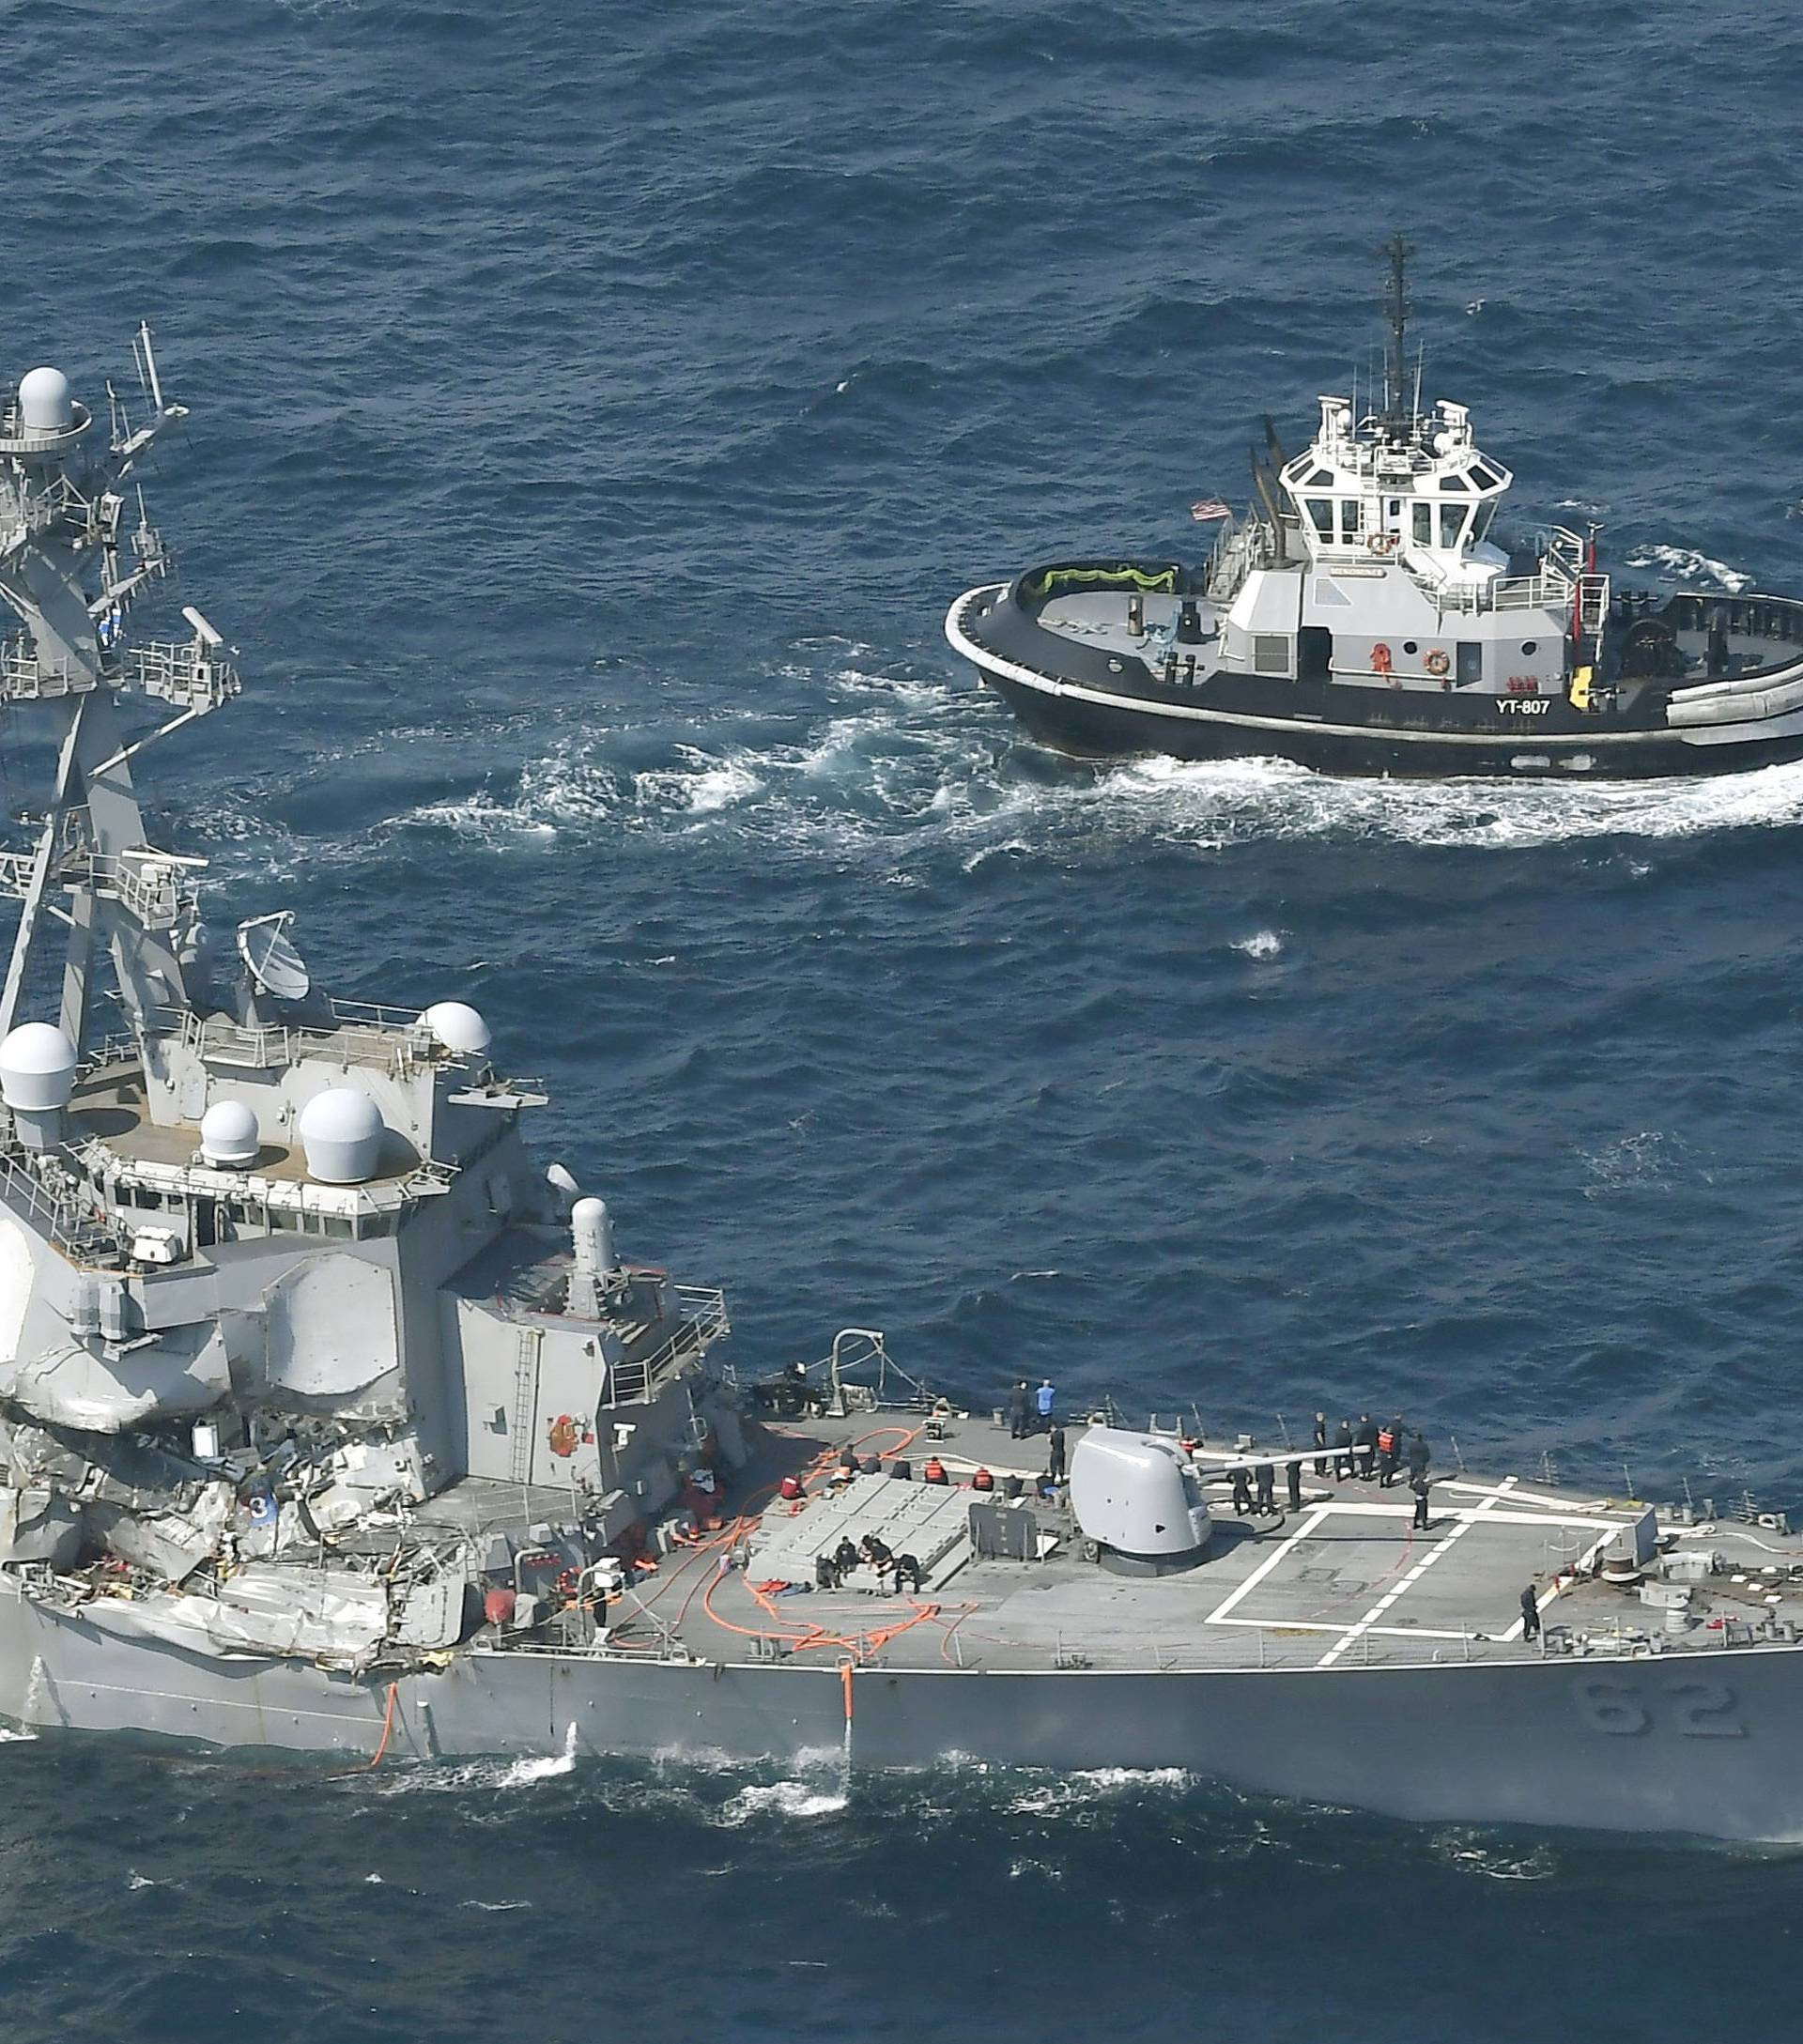 The Arleigh Burke-class guided-missile destroyer USS Fitzgerald, damaged by colliding with a Philippine-flagged merchant vessel, is seen next to a tugboat off Shimoda, Japan